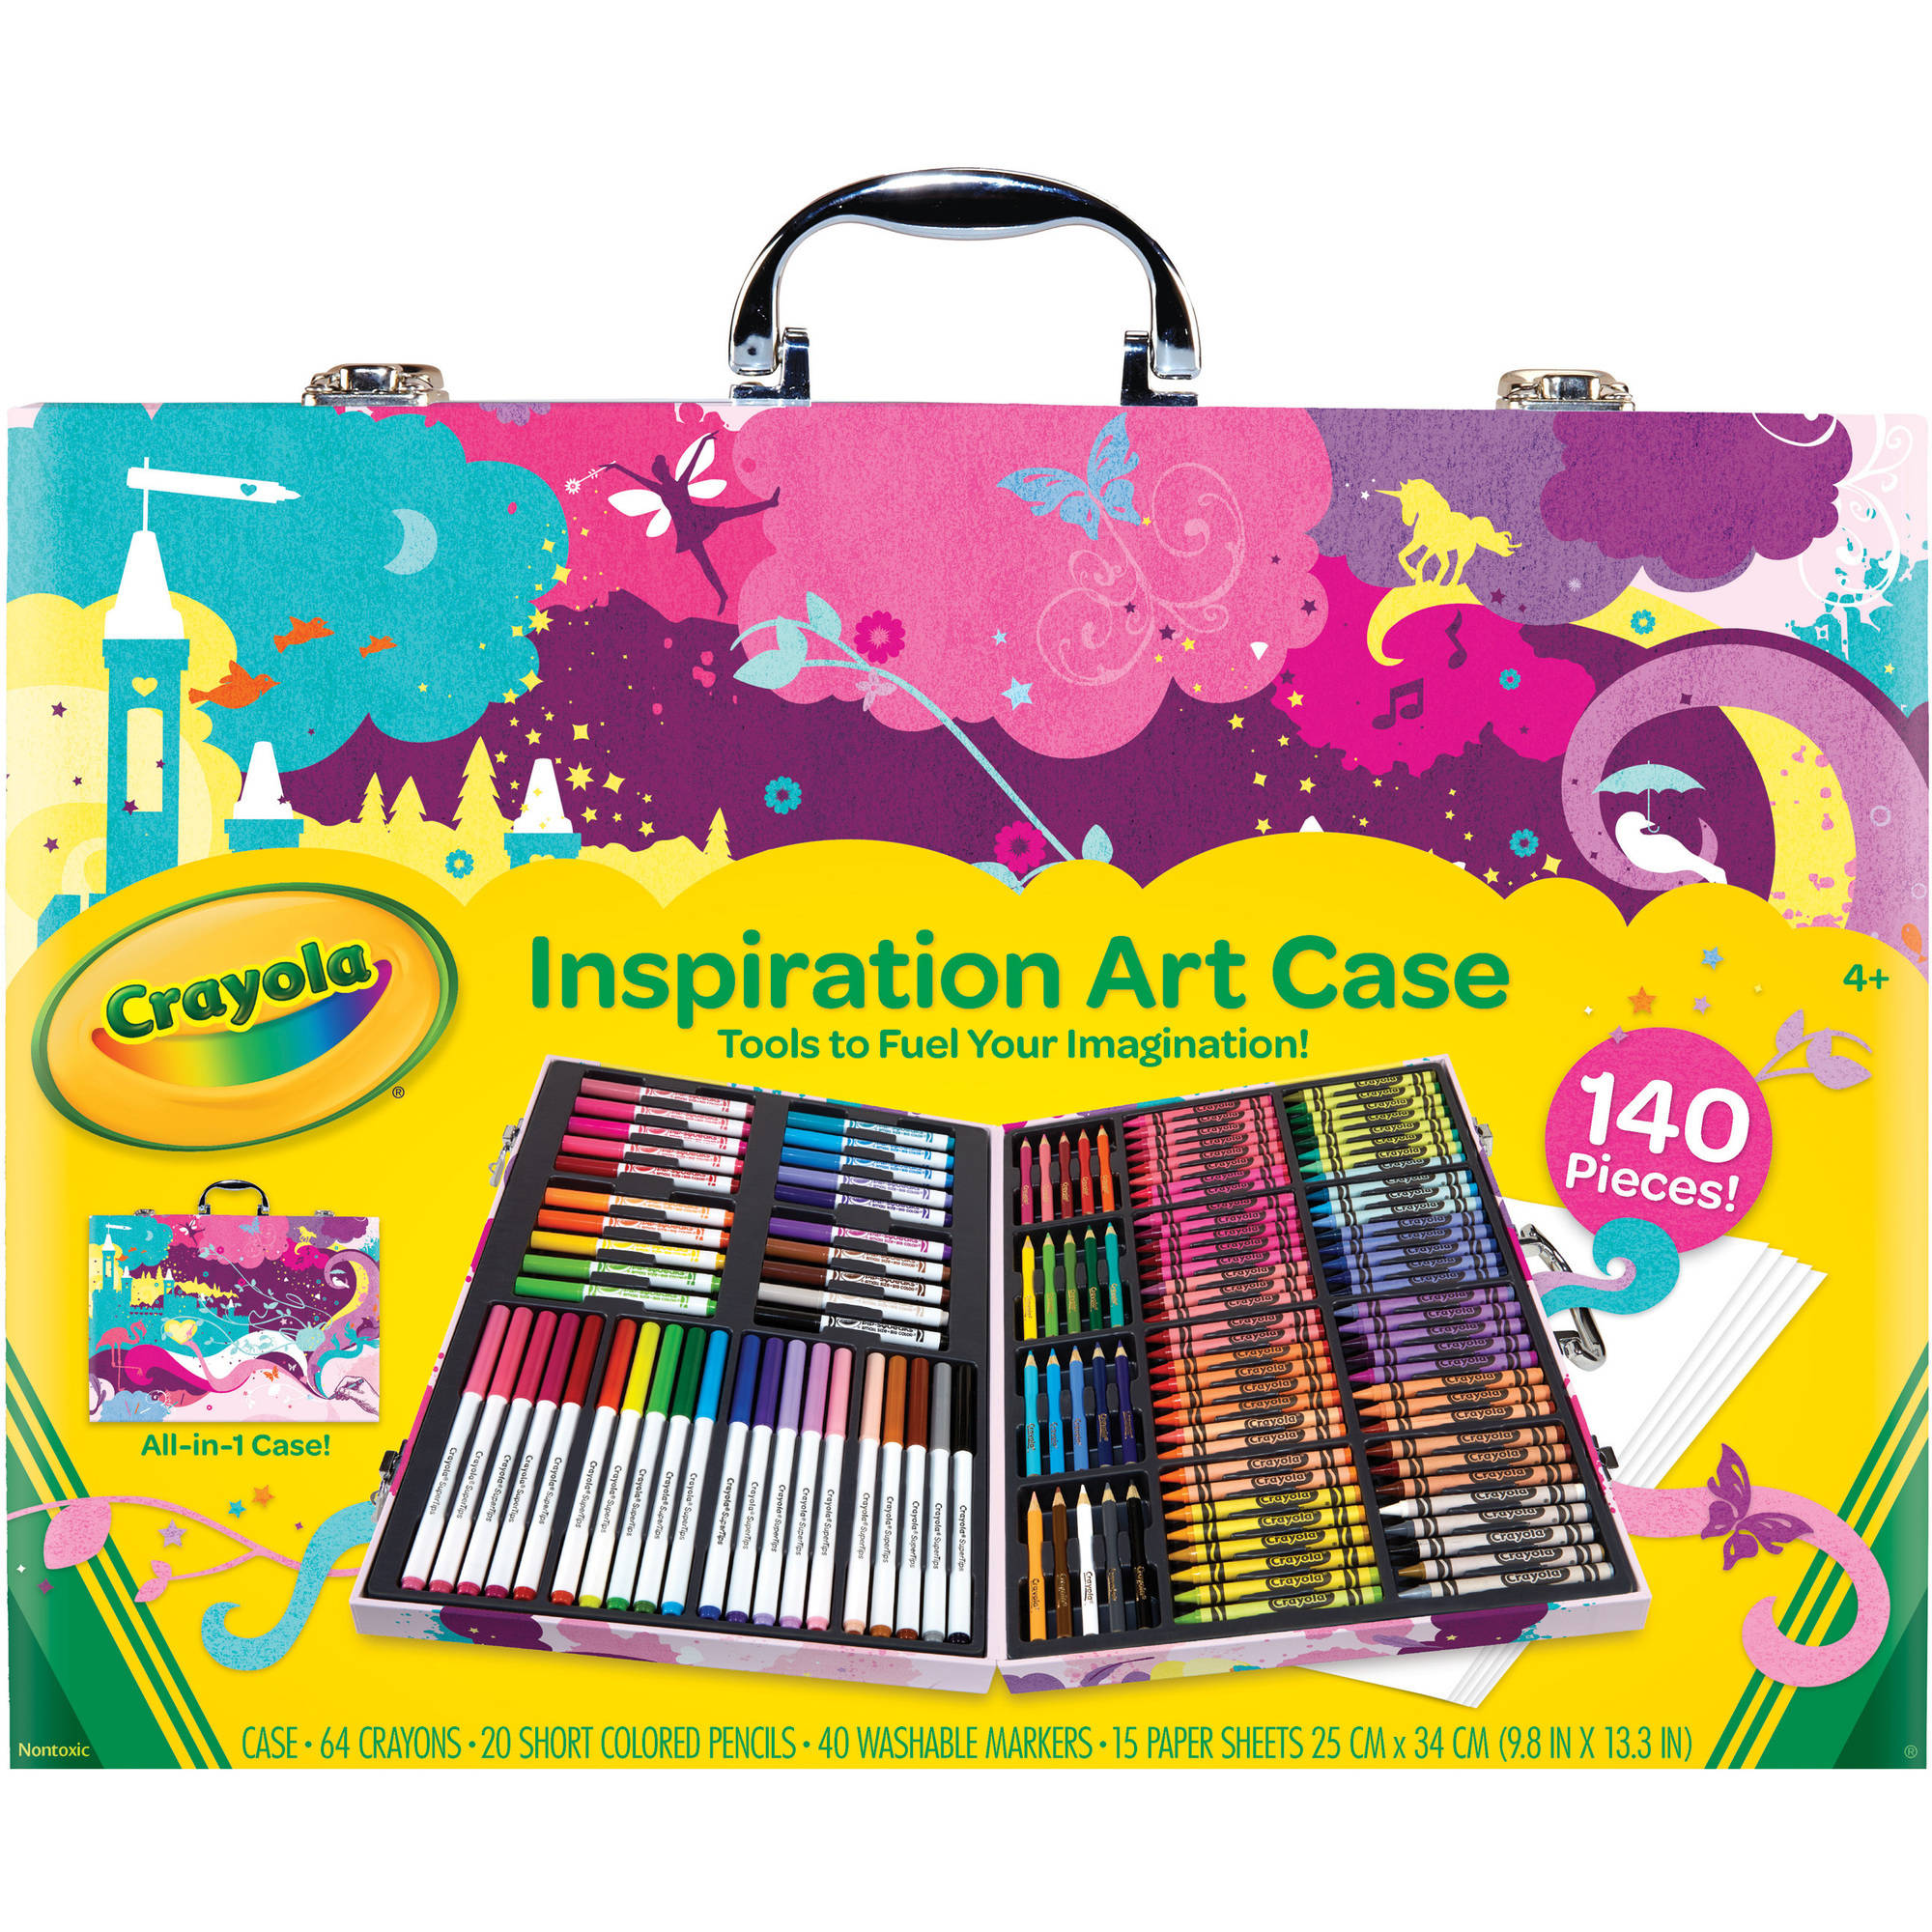 Crayola Inspiration Art Case with 140 Pieces, Pink by Overstock